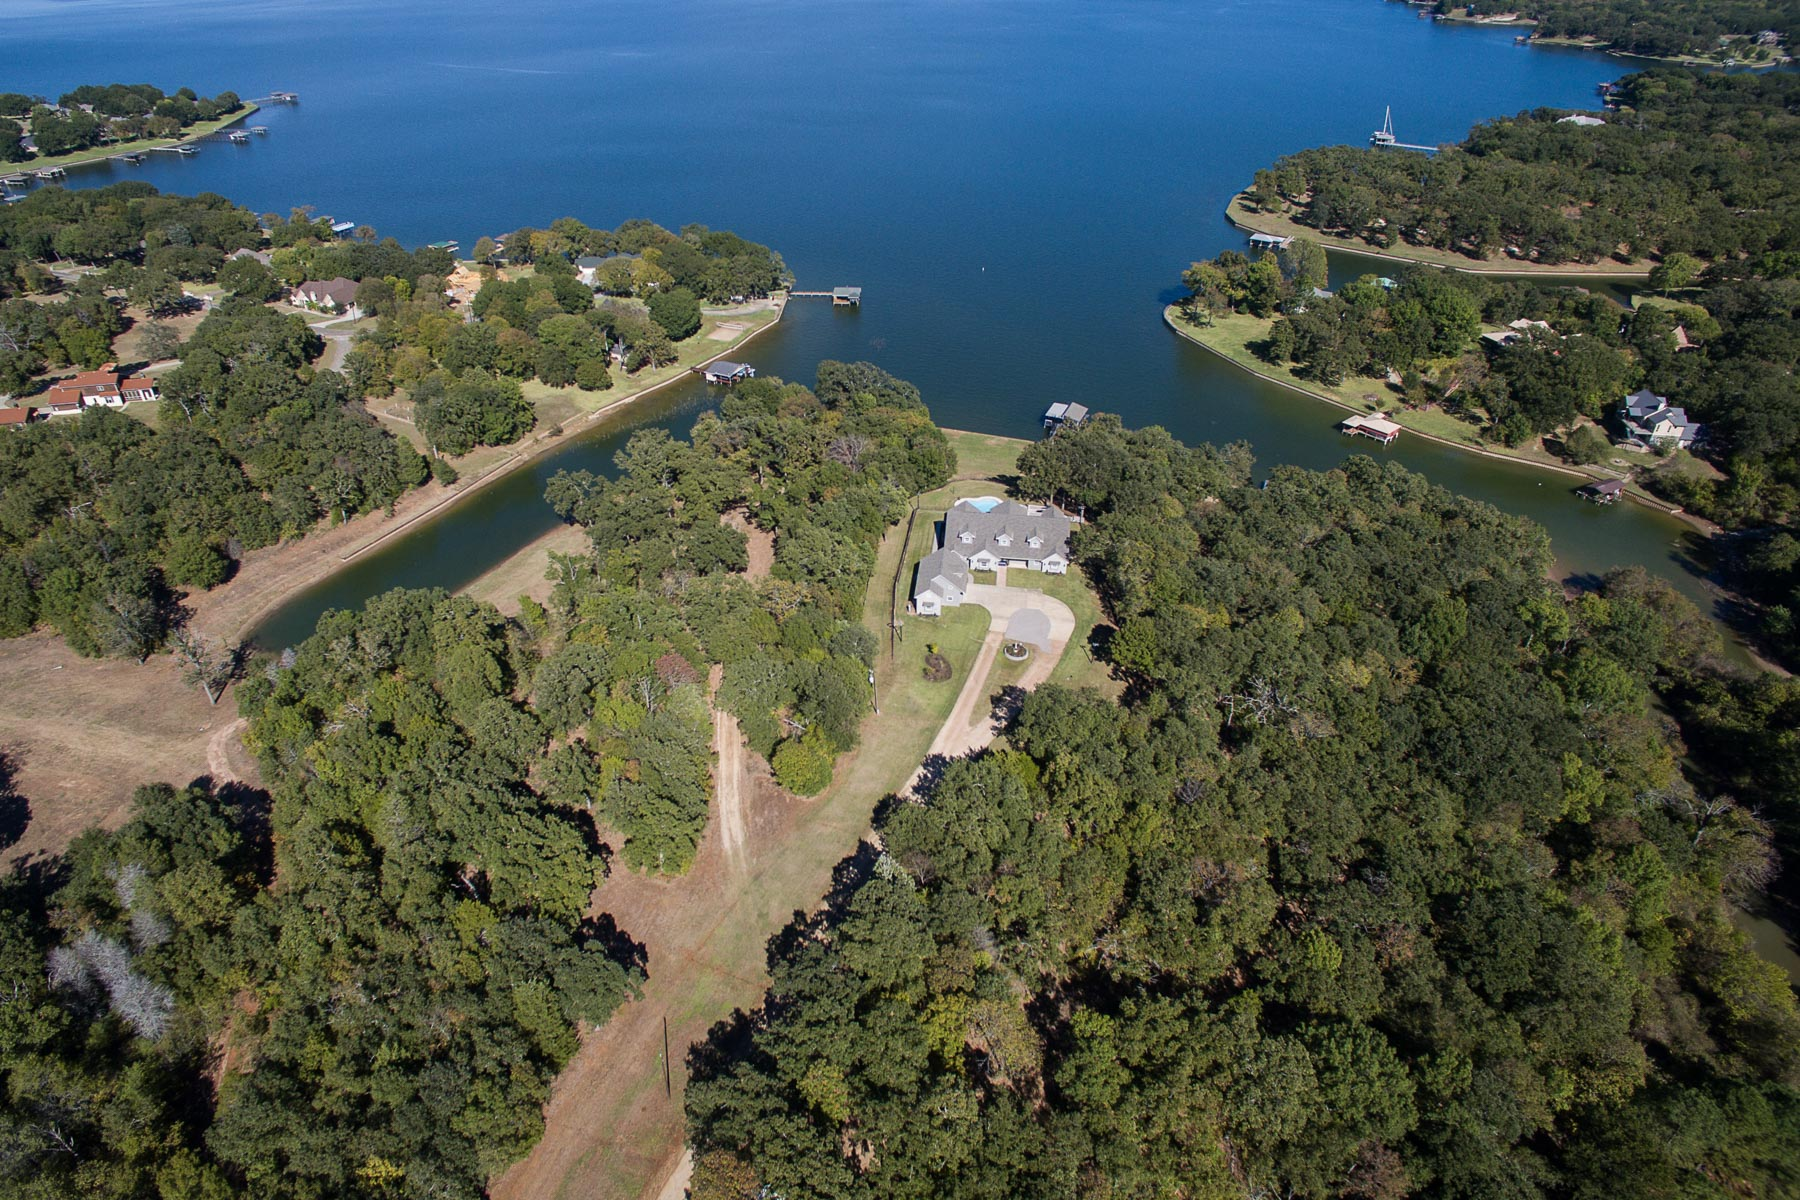 Single Family Home for Sale at Stunning Richland Chambers Lake Estate 14339 Azure Lane Streetman, Texas 75859 United States